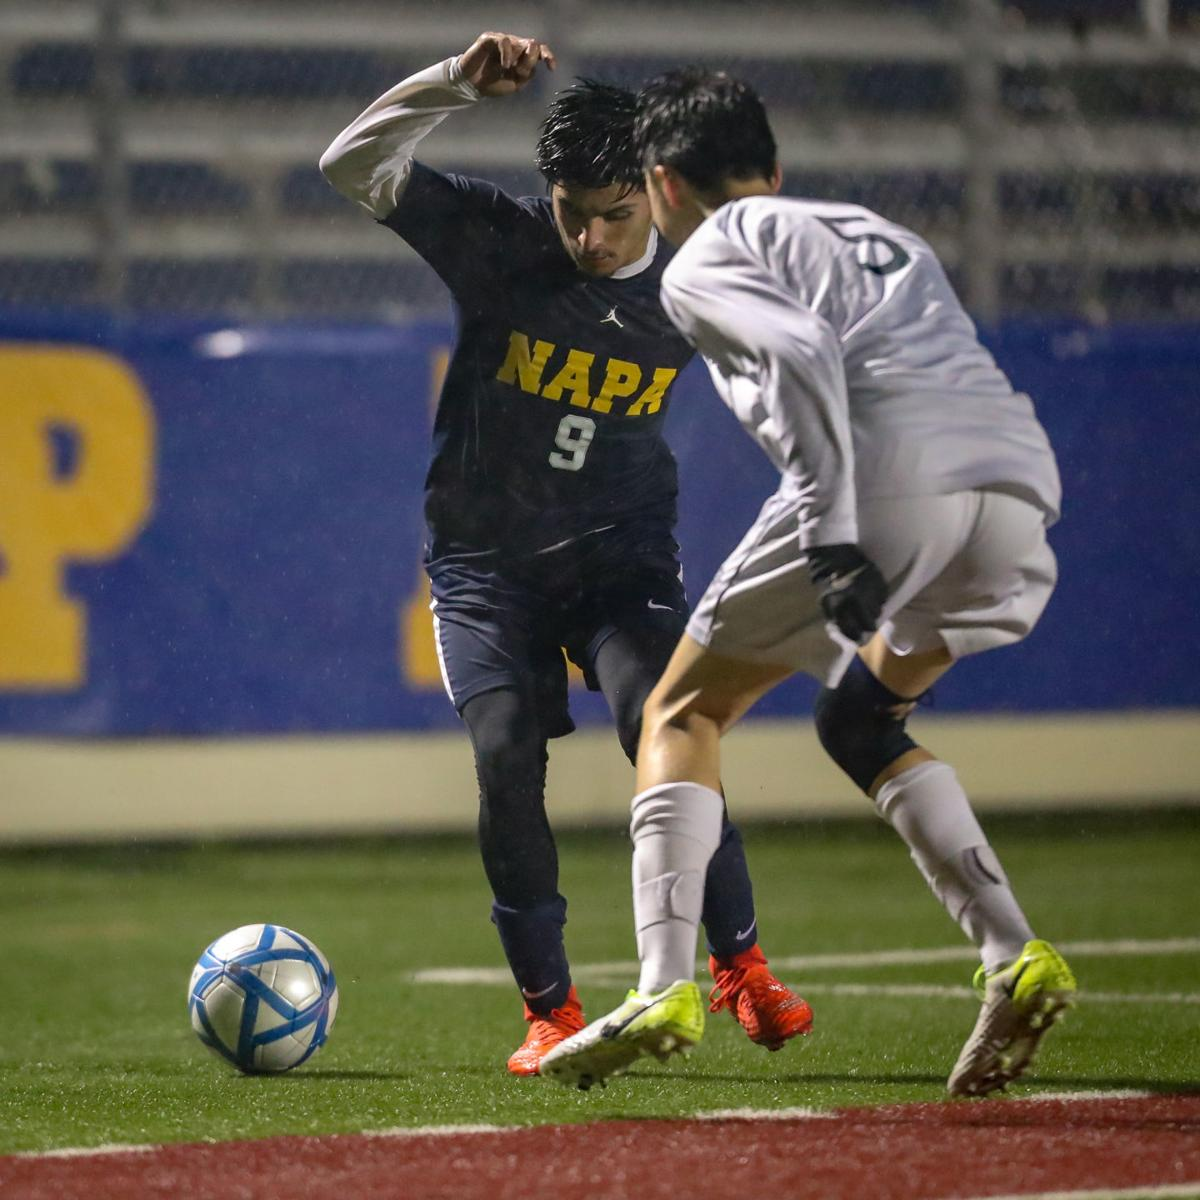 Castro Valley at Napa in boys soccer playoffs